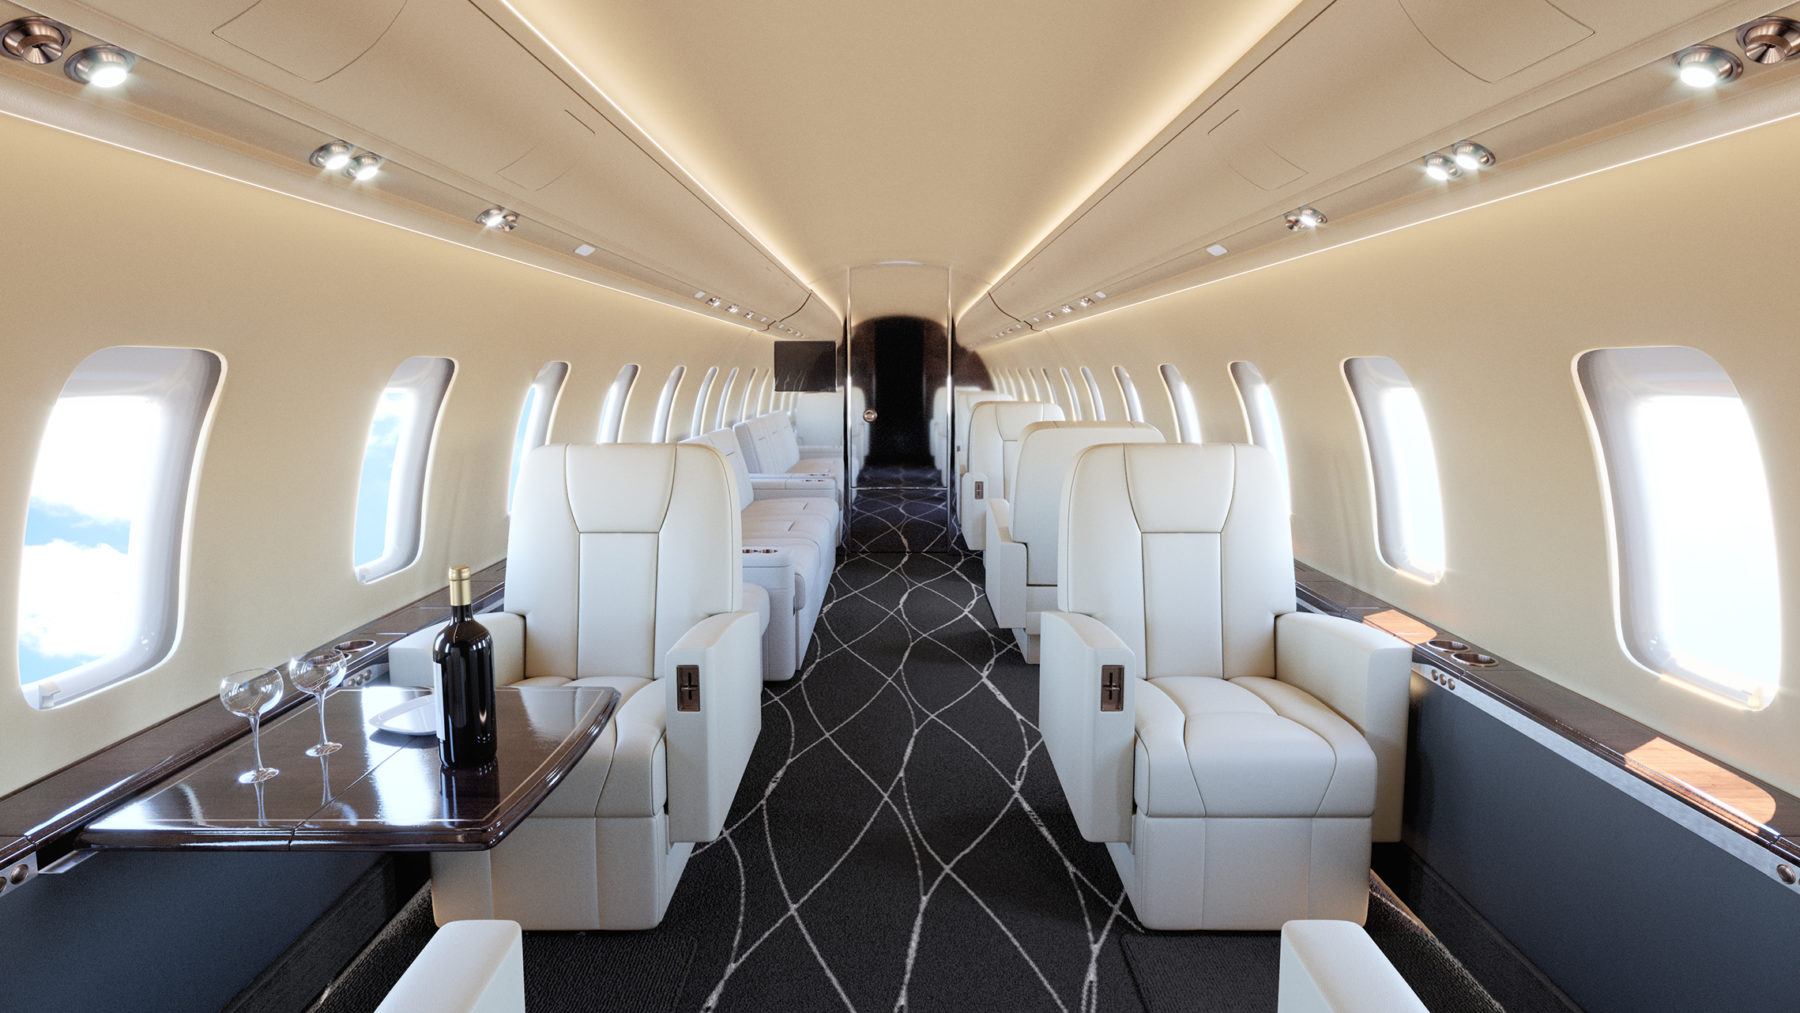 VIP Business aircraft interior 3d rendering. Rendering for private jet, Bombardier Challenger 650, interior refurbishment